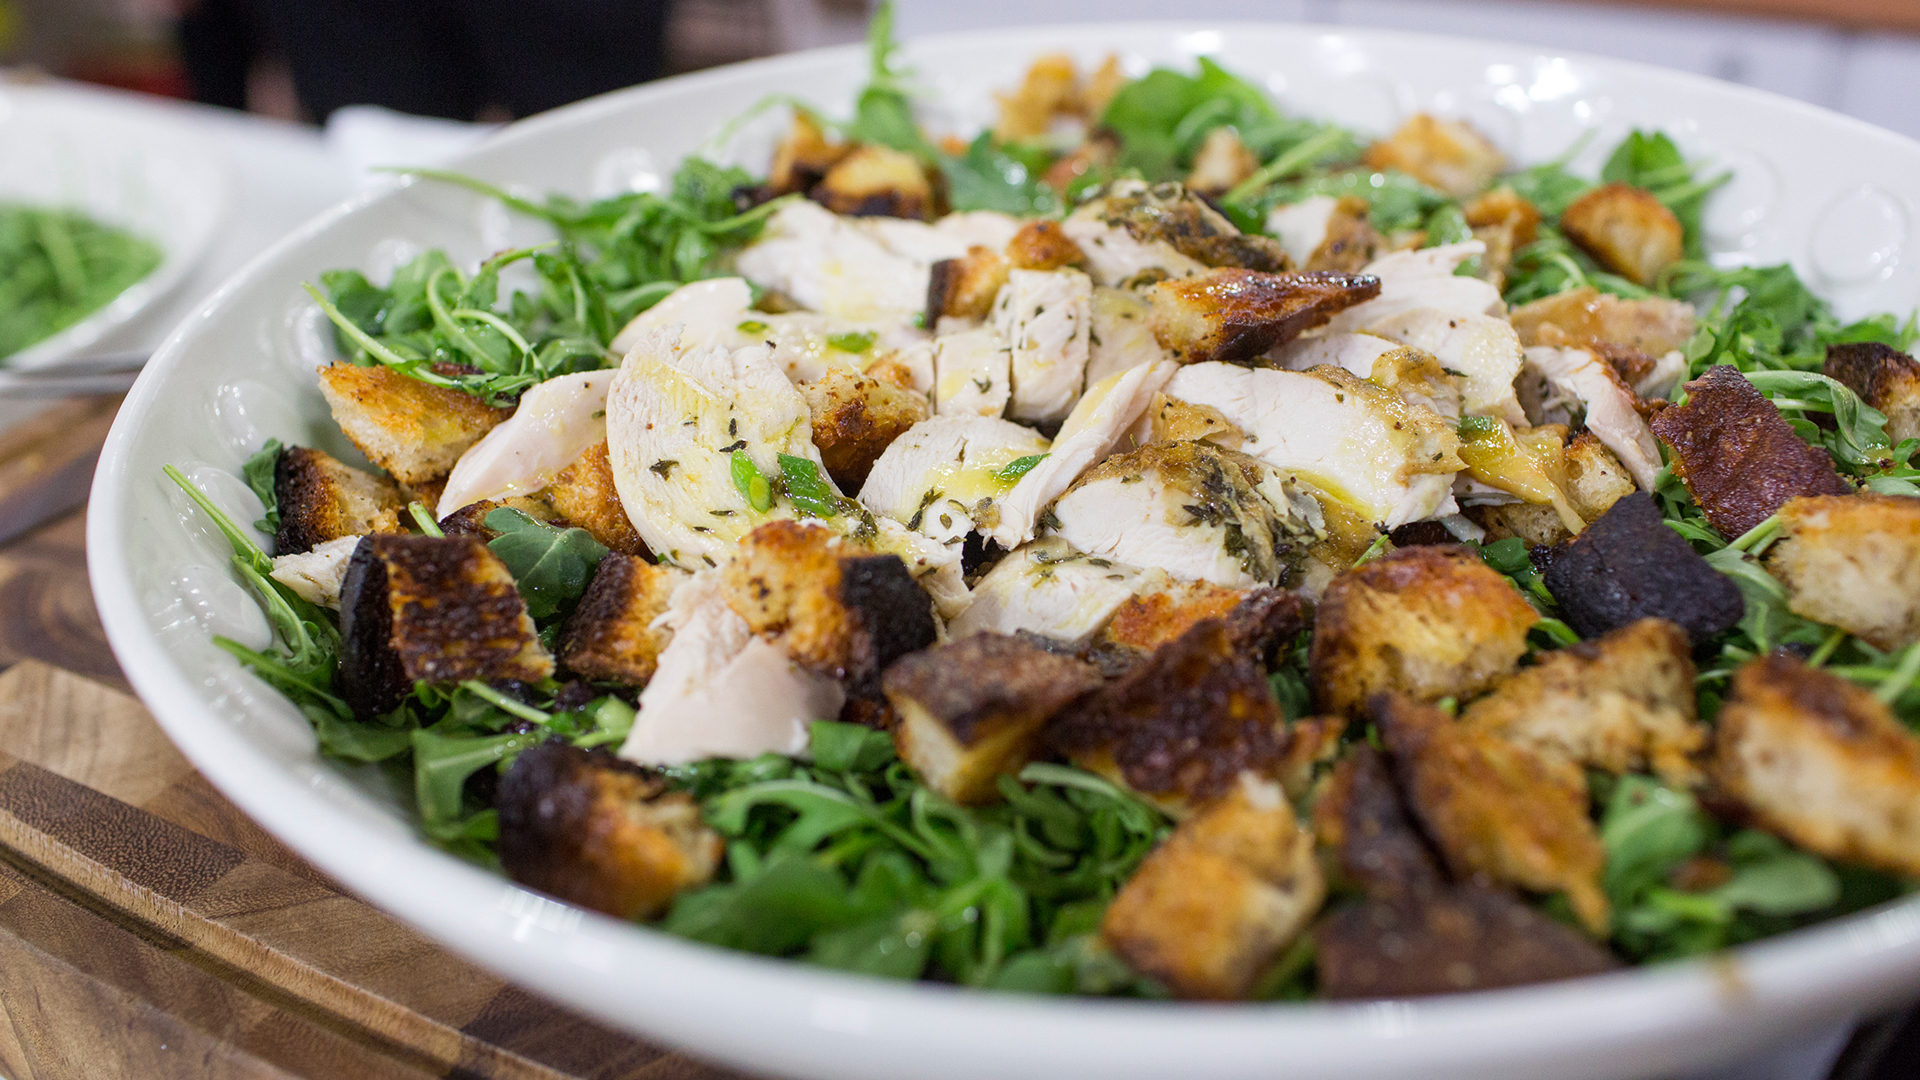 Ina Garten Salads roast chicken over bread and arugula salad - today